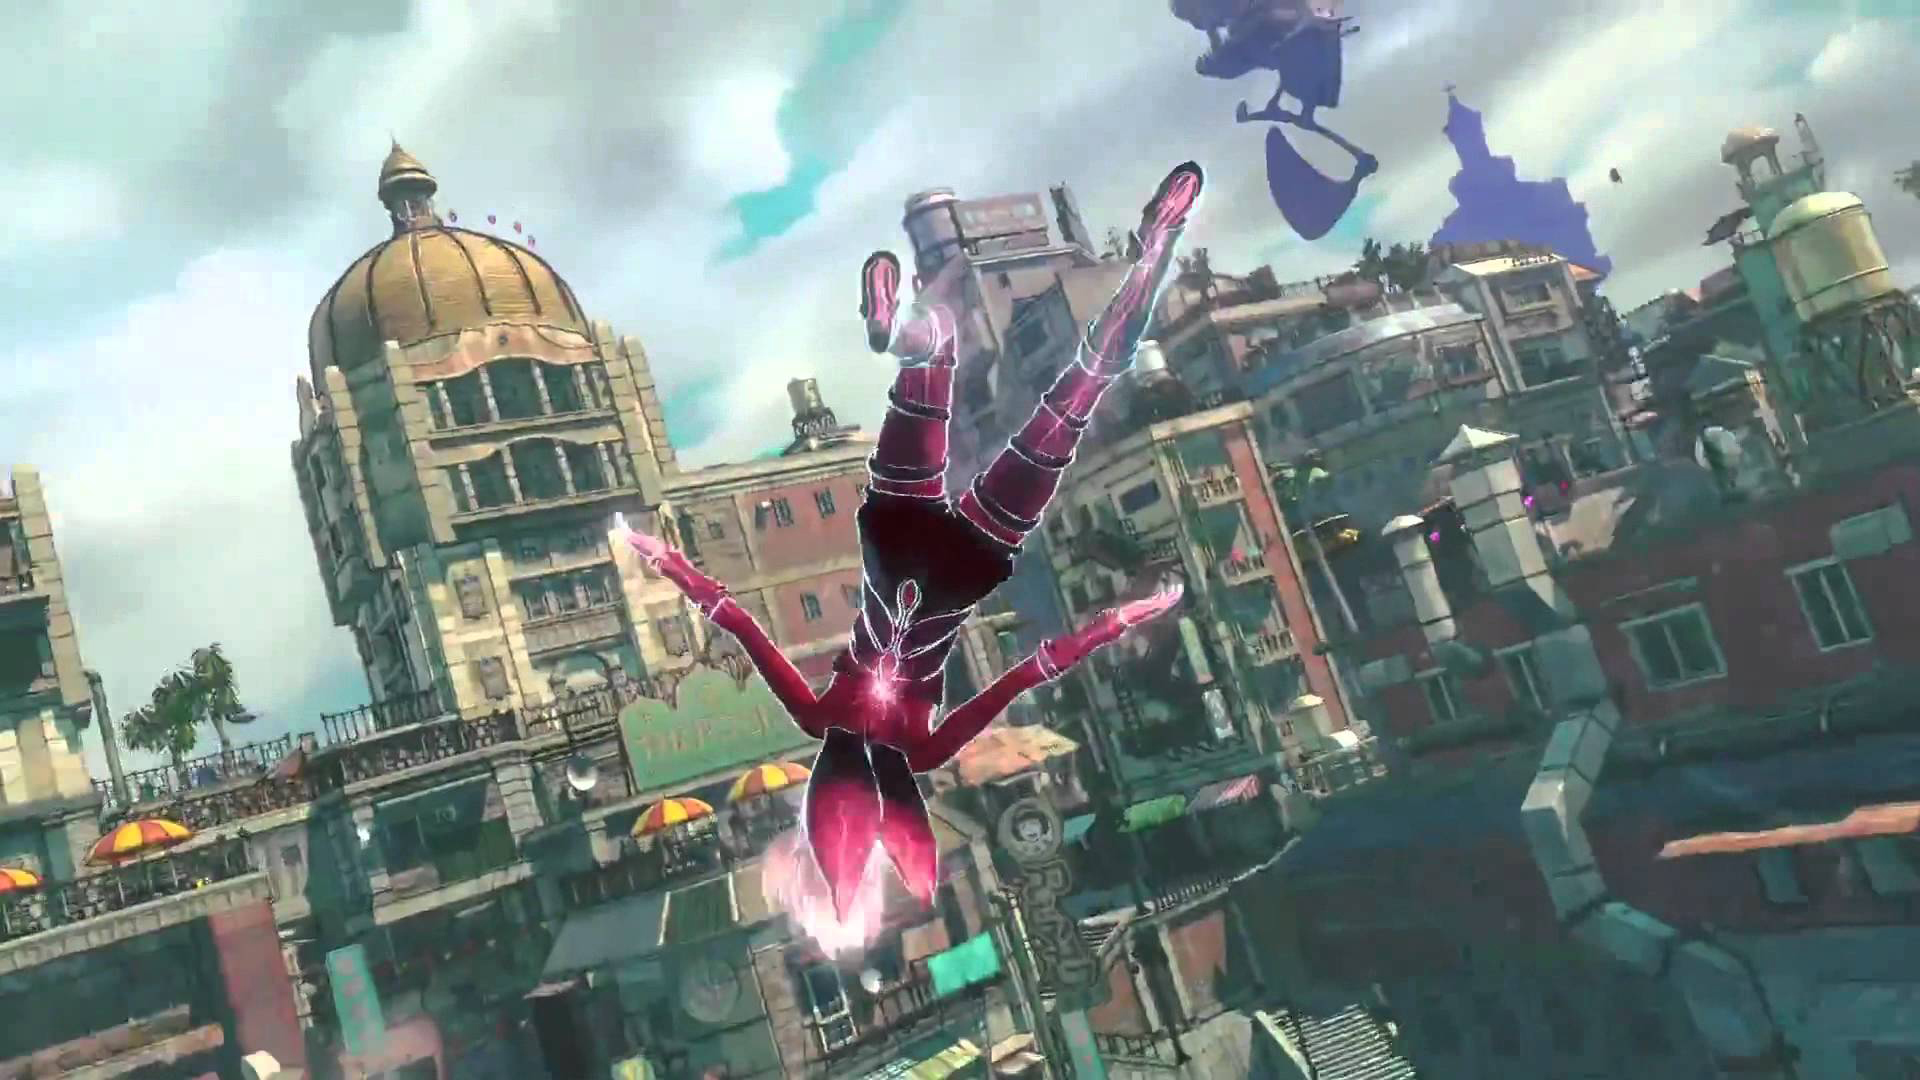 3d Action Game Wallpaper Gravity Rush 2 Flies Into 2017